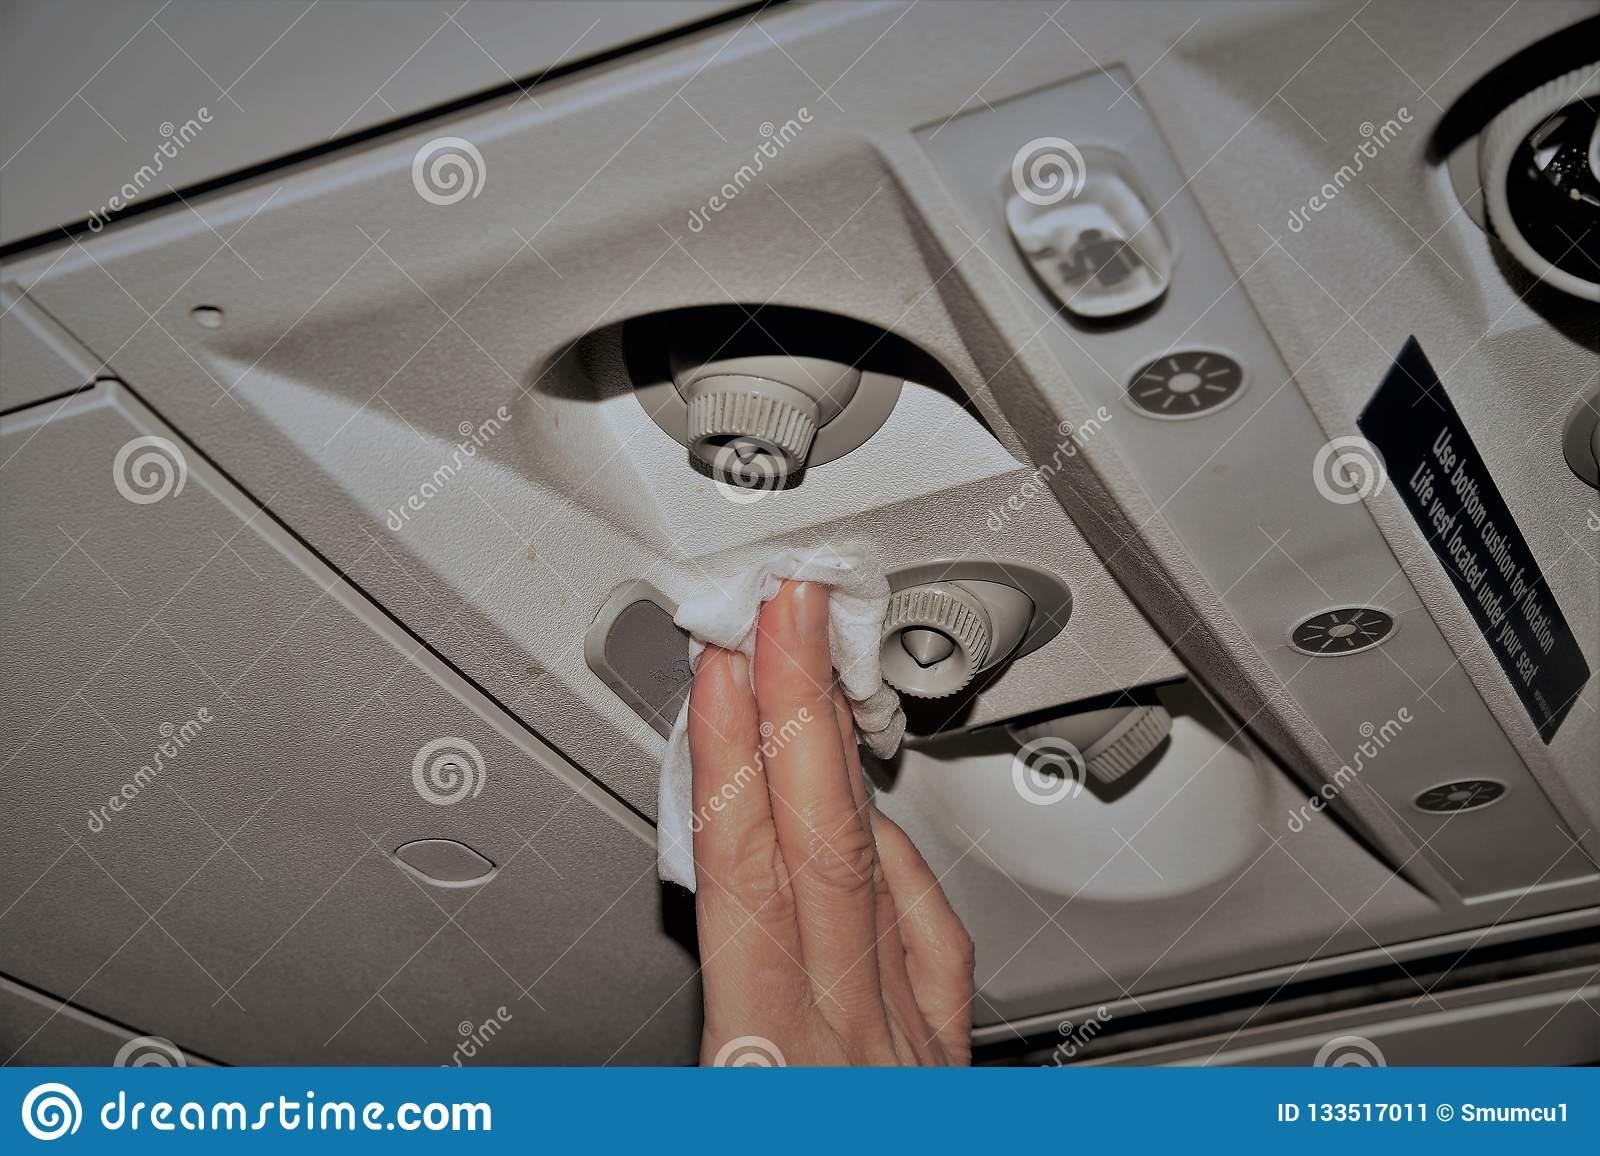 A Woman In An Airplane Cleaning The Air Vents Stock Image